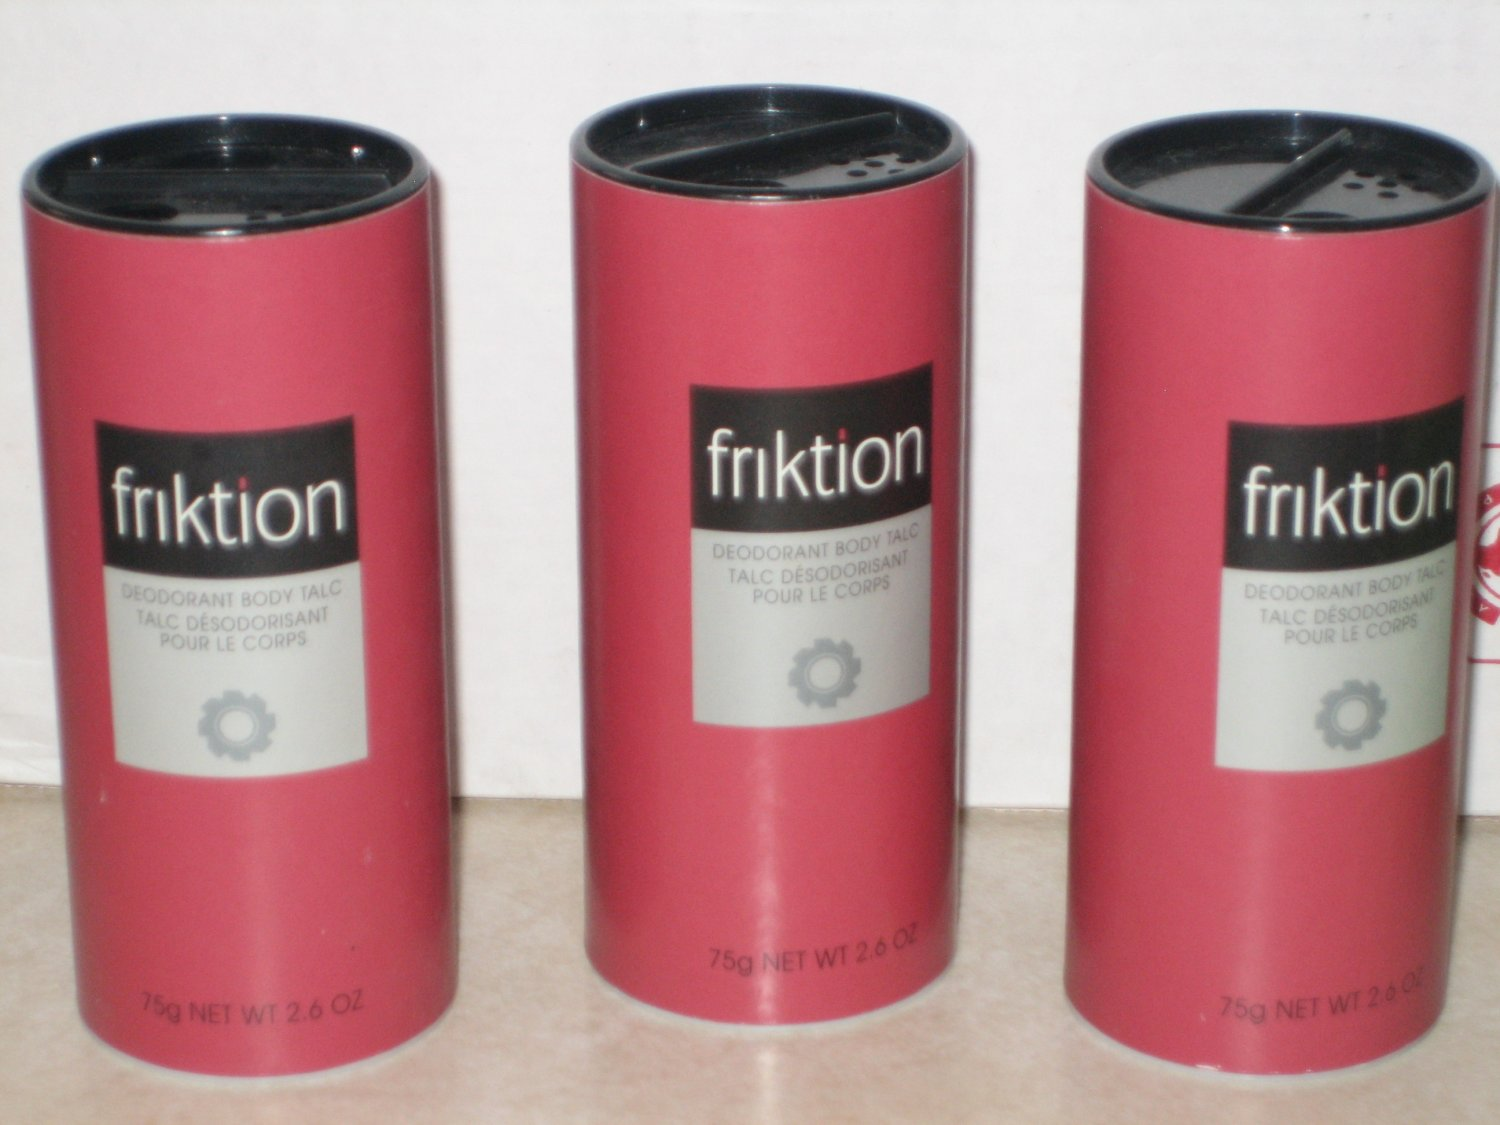 3 New AVON FRIKTION Fragrance Deodorant TALC Men 1999